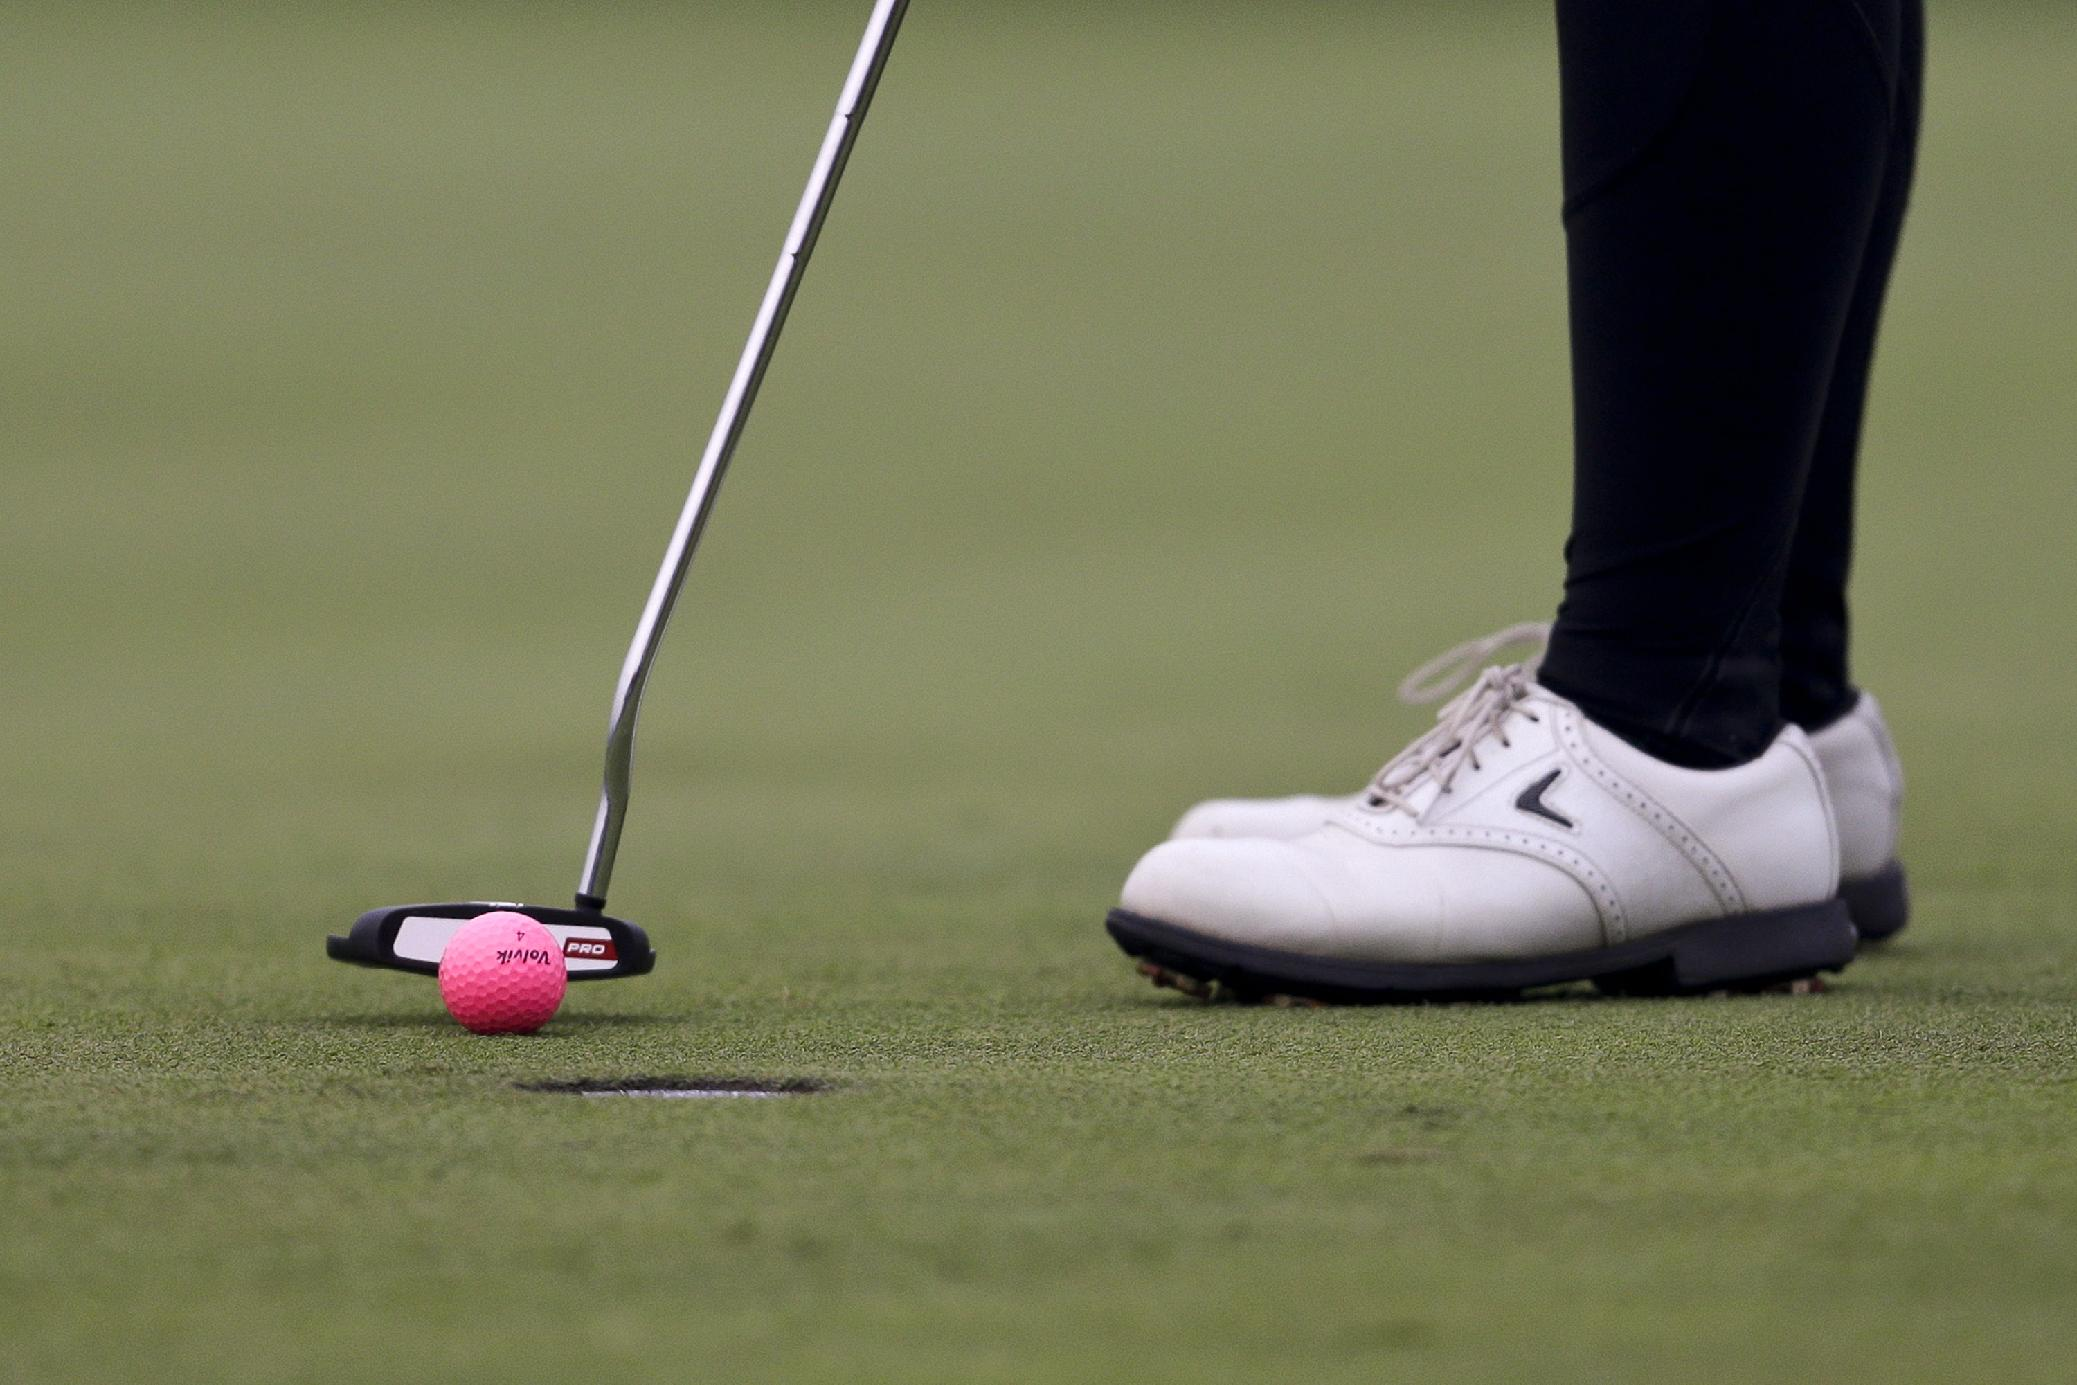 Thailand's Pornanong Phatlum putts on the 18th hole during the third round of the Reignwood LPGA Classic golf tournament at Pine Valley Golf Club on the outskirts of Beijing, China, Saturday, Oct. 5, 2013